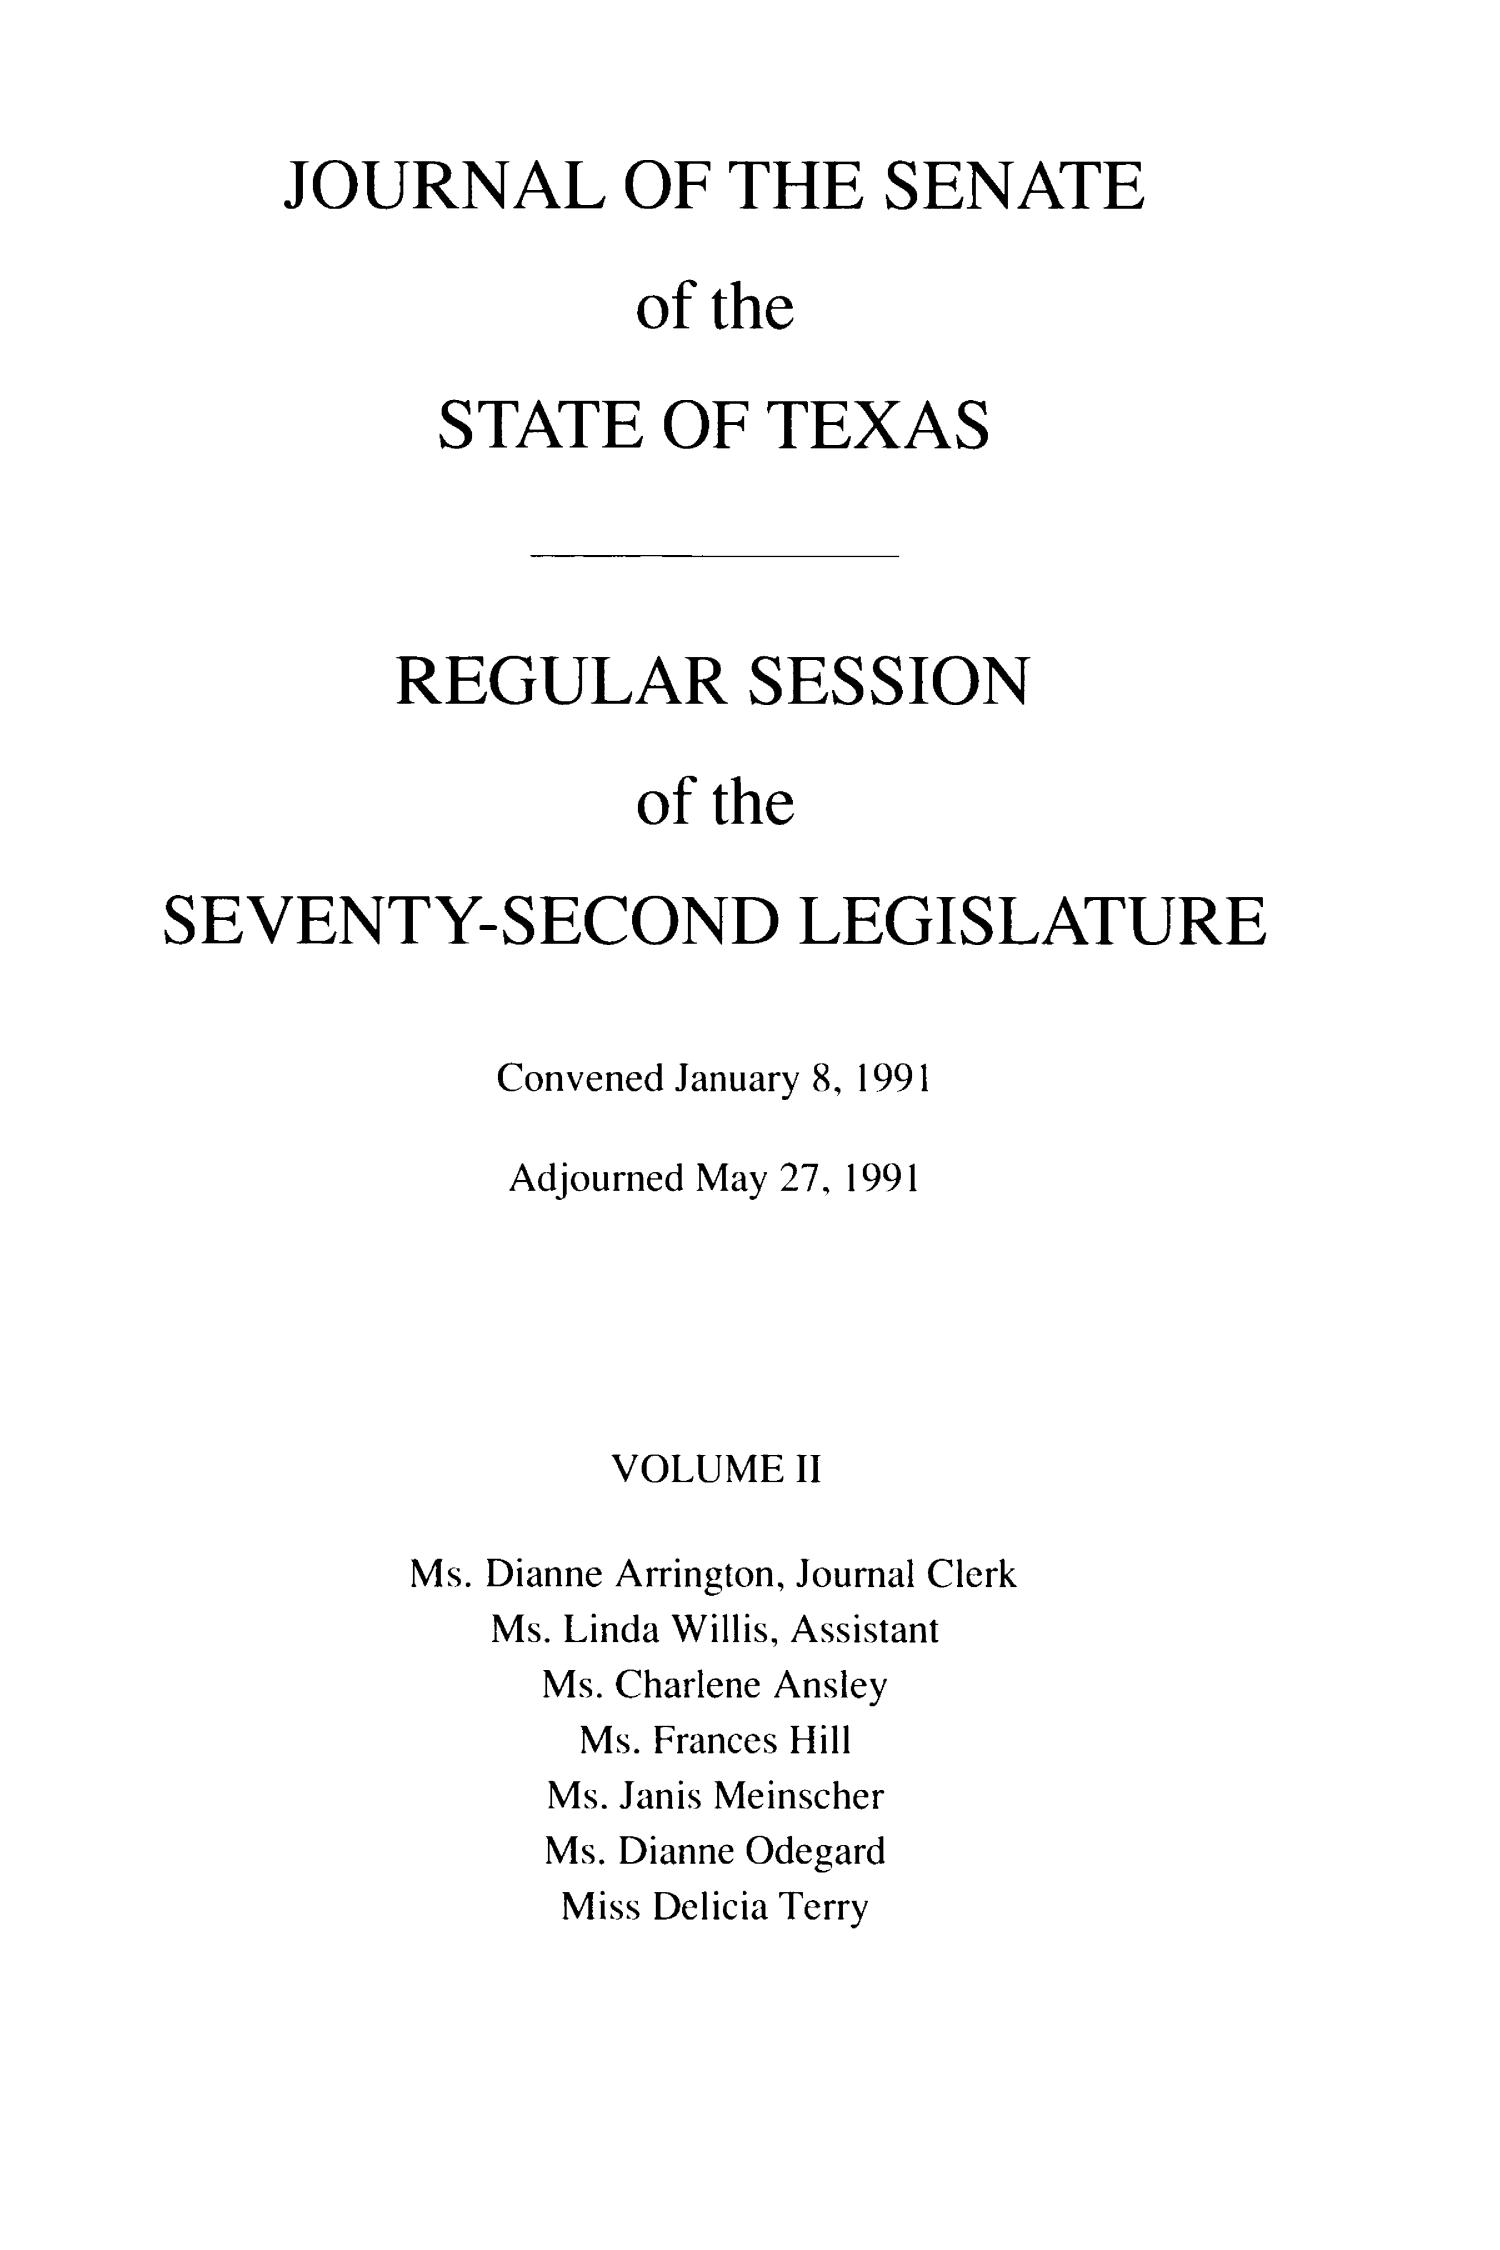 Journal of the Senate of the State of Texas, Regular Session of the Seventy-Second Legislature, Volume 2                                                                                                      Title Page